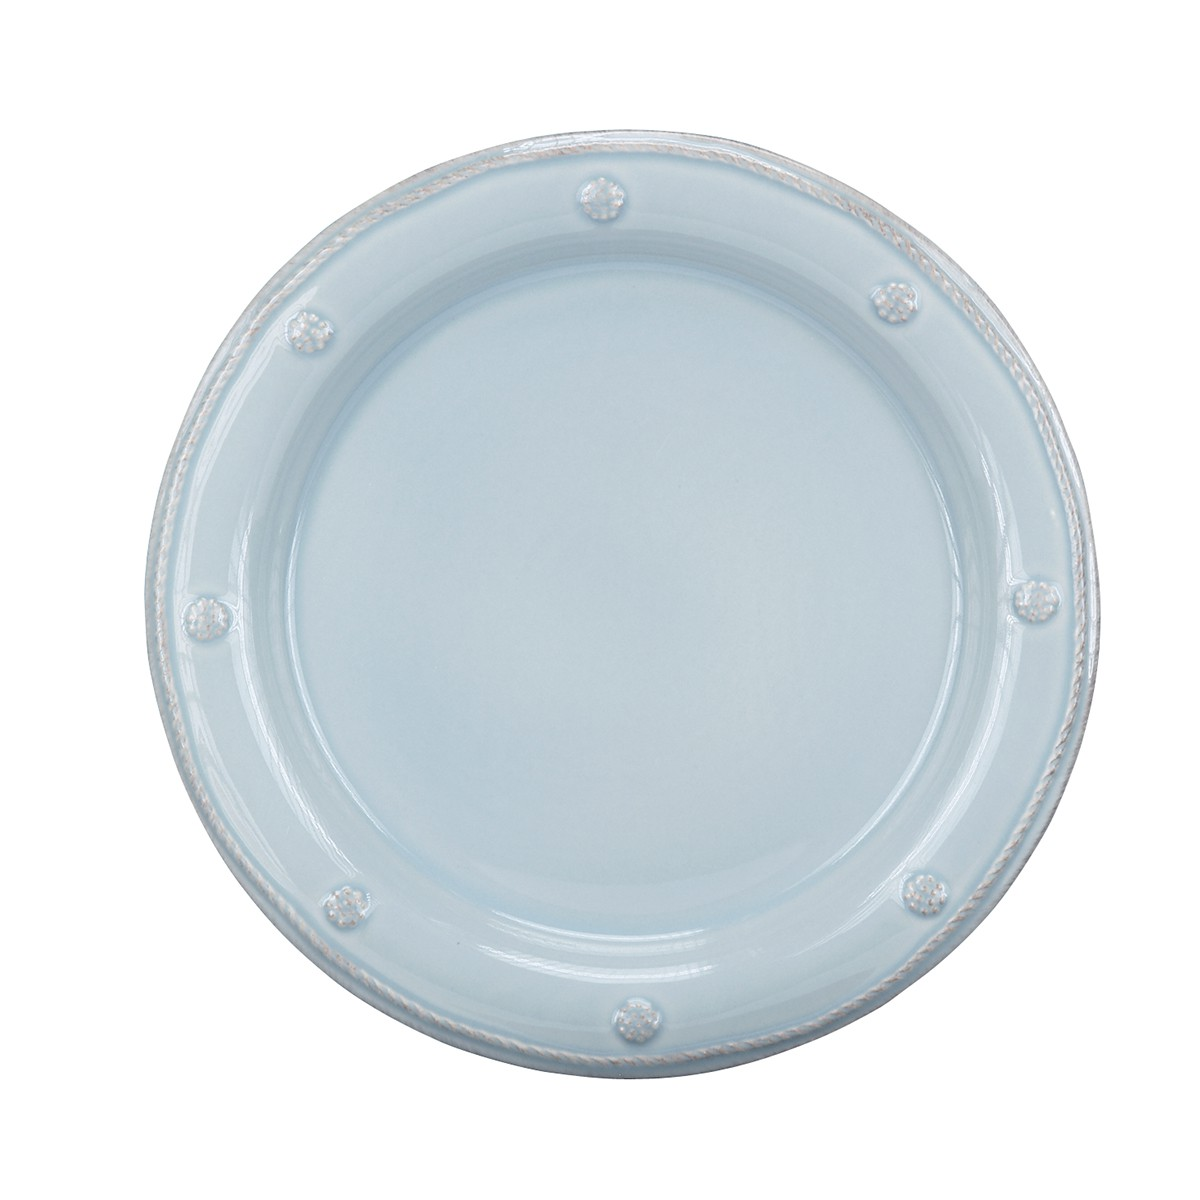 15137 - Ice Blue Dessert Plate(12) - $37/each